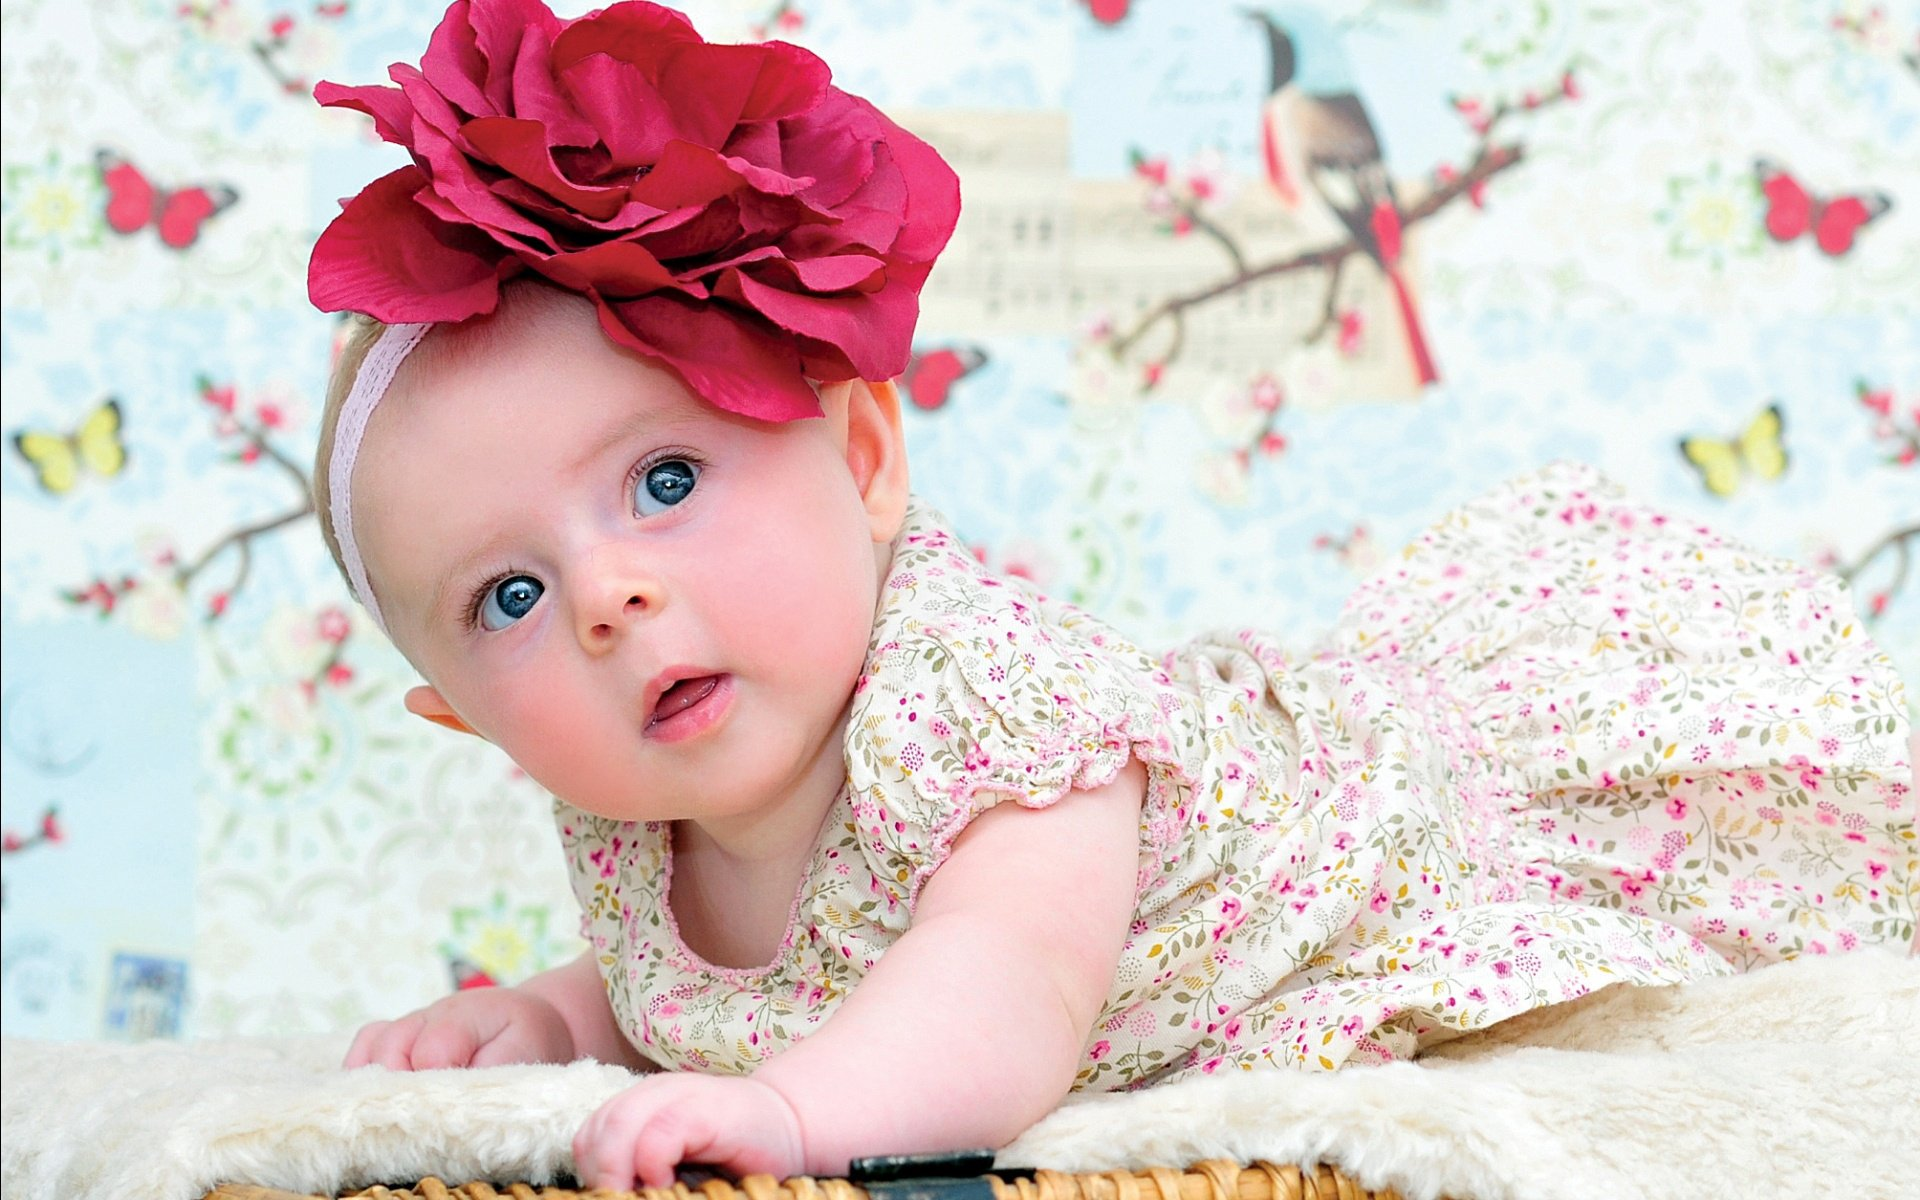 18ac689d472e Cute Baby Girl Wallpaper - WallpaperSafari